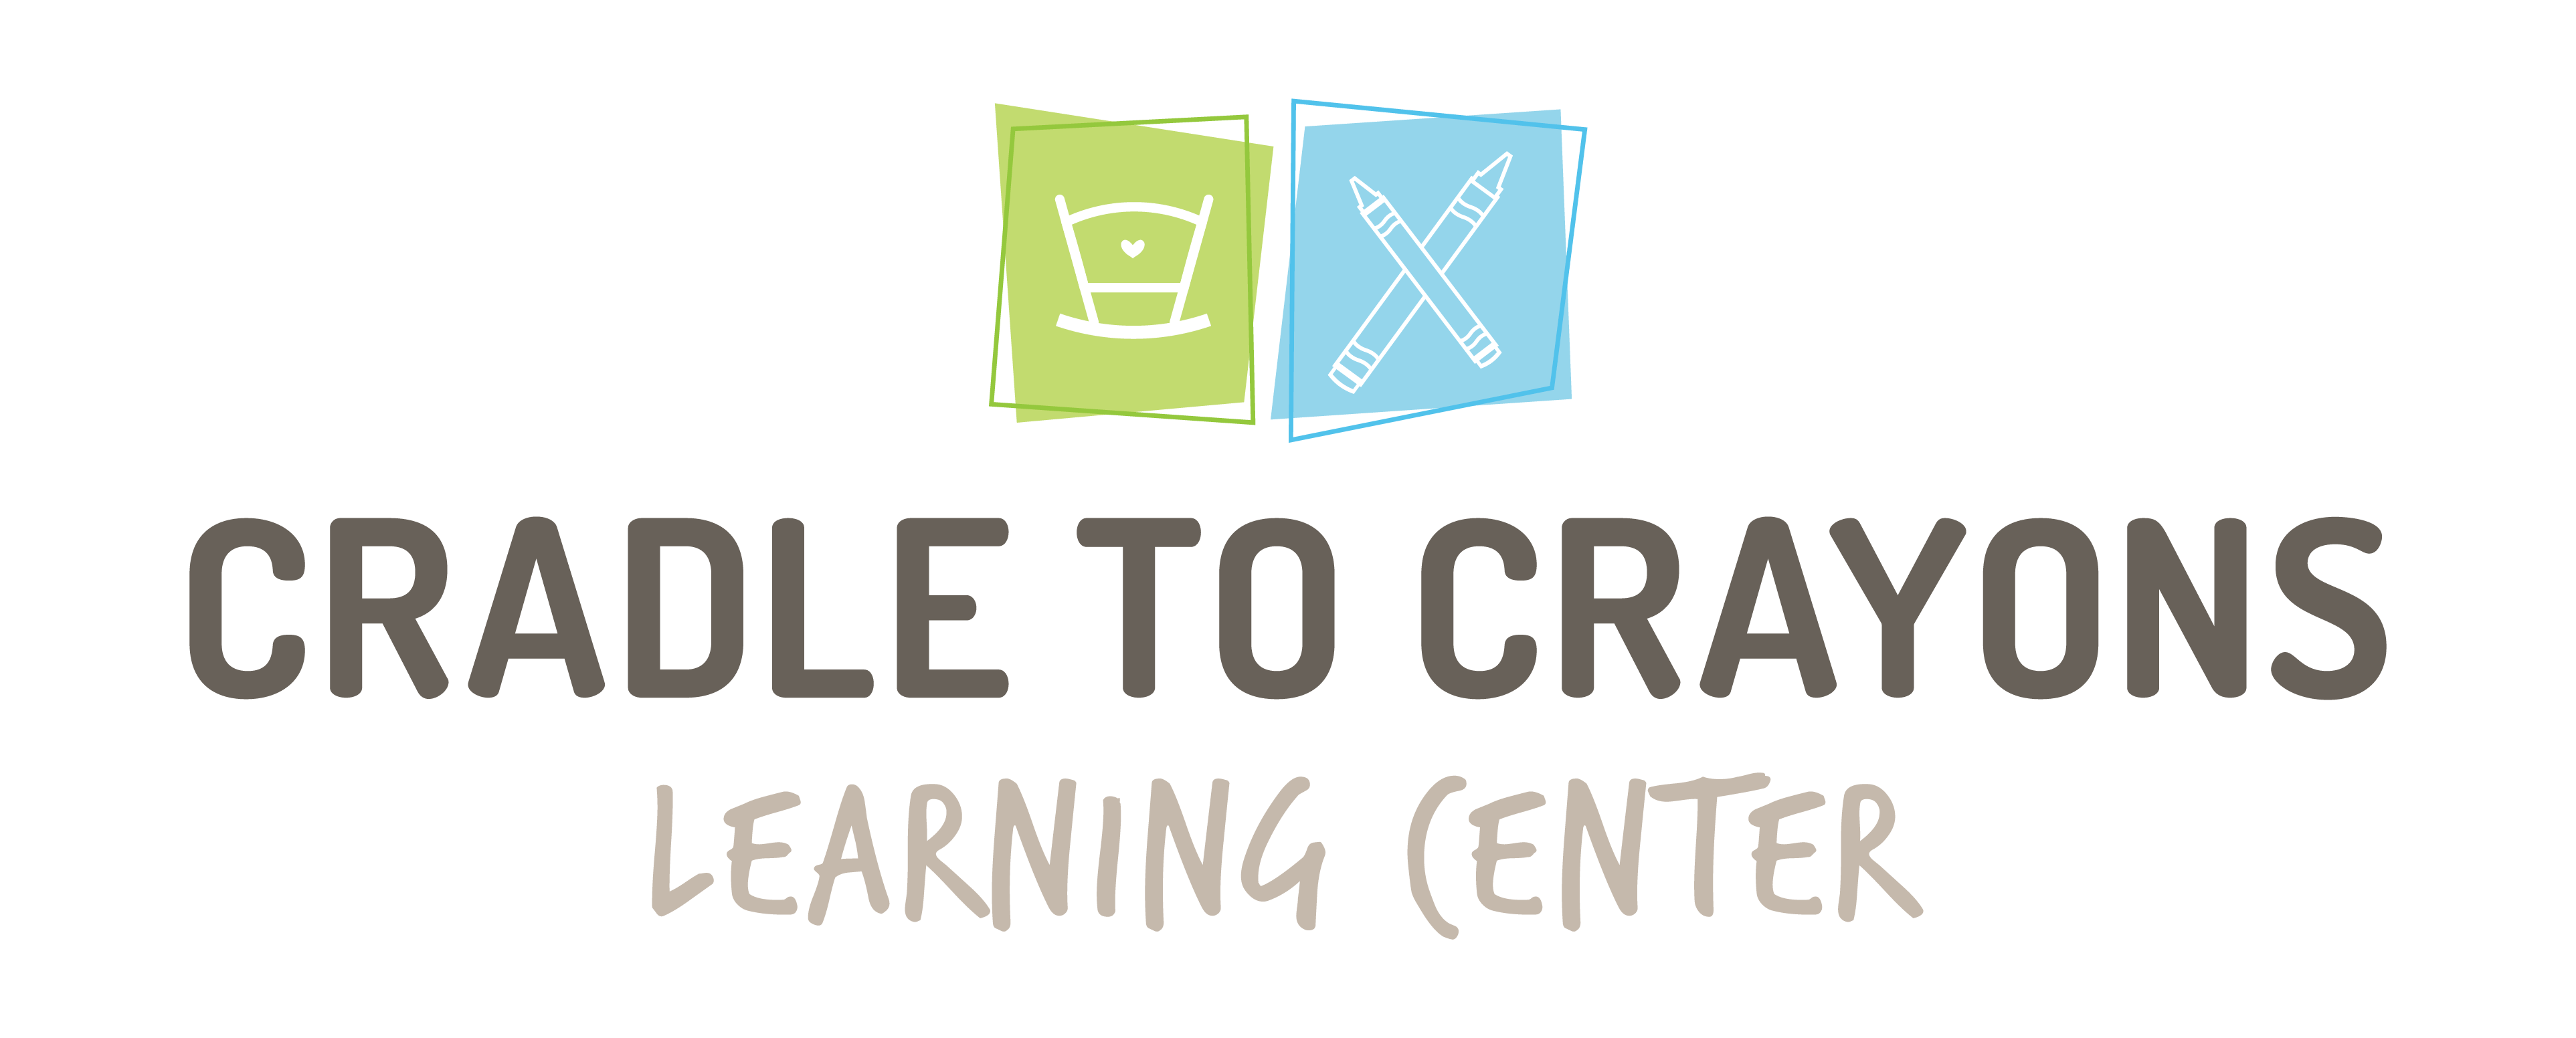 Cradle to Crayons Learning Center LLC